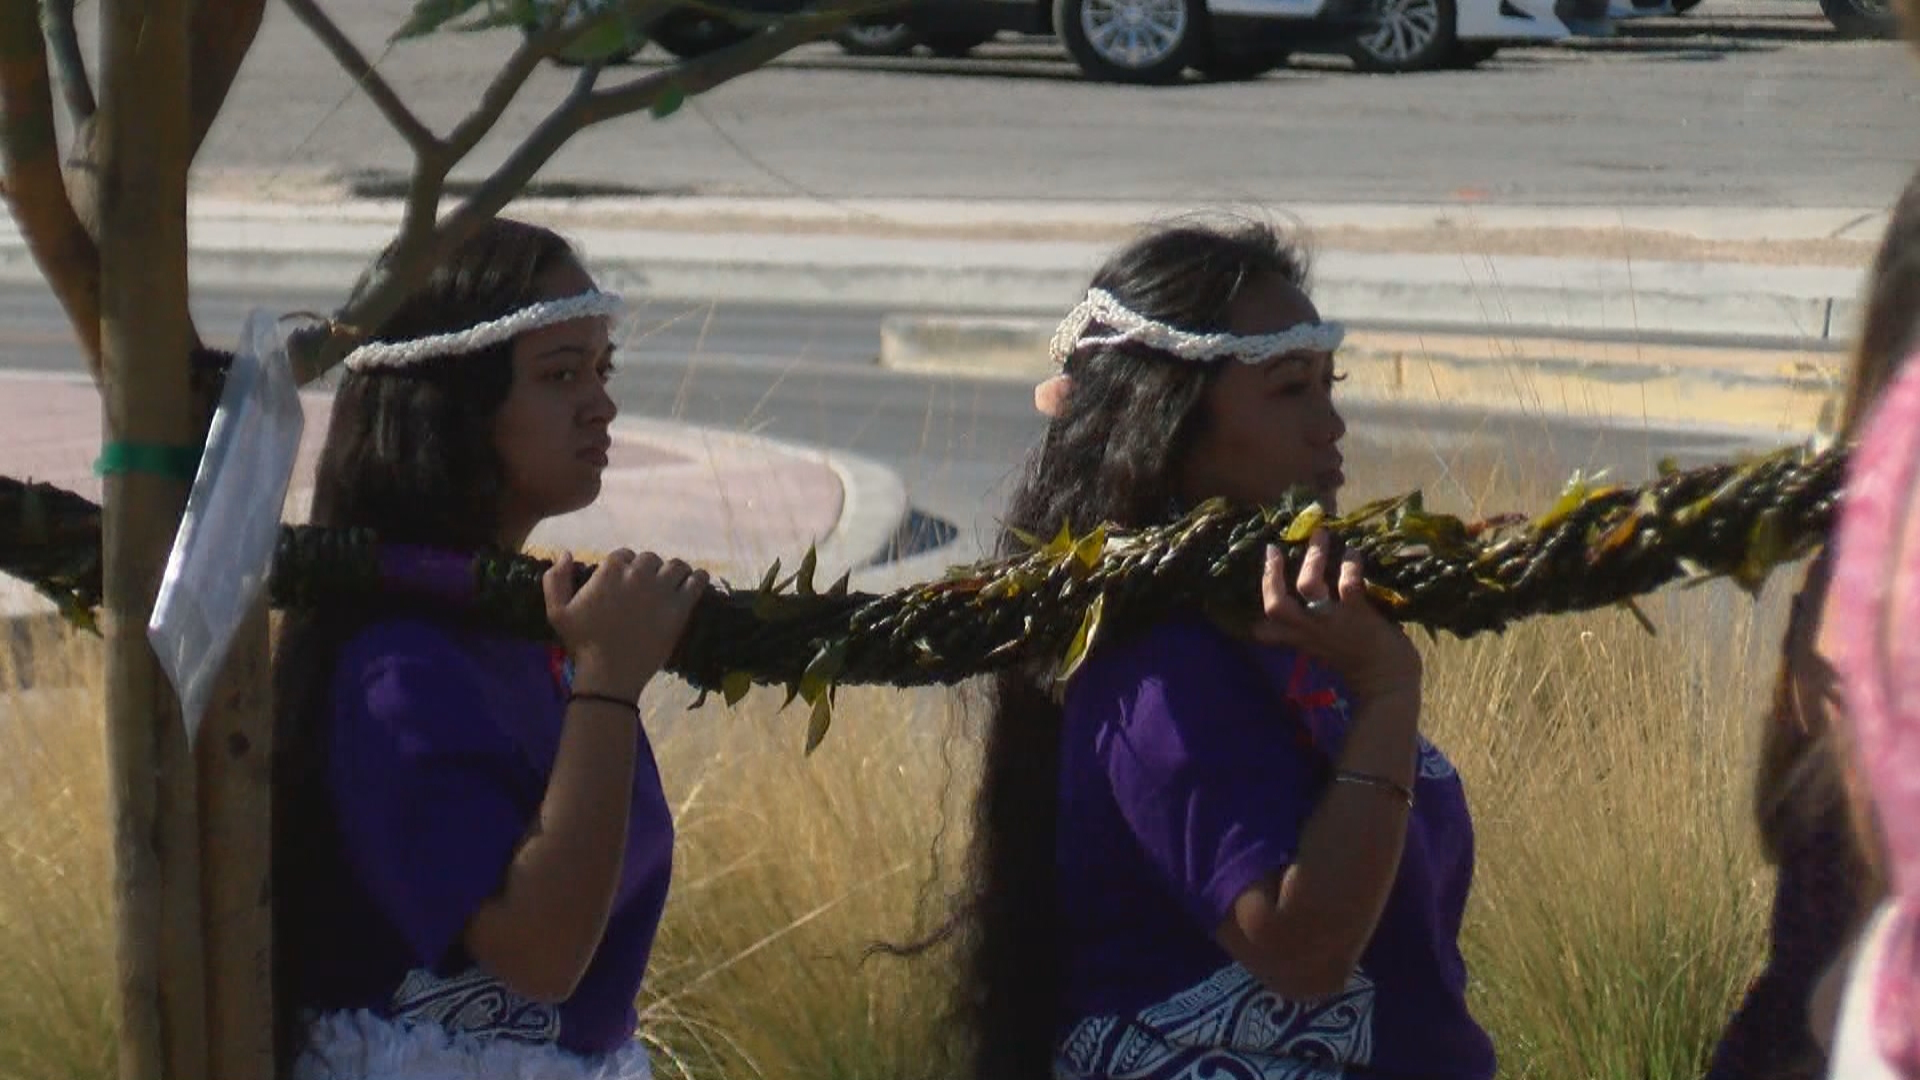 A group of Hawaiians who now make their homes in Las Vegas or still live in the islands have brought the city's people a special lei braided with leaves from a sacred plant in a gesture they hope will bring peace and healing after the deadliest mass shooting in modern U.S. history. (KSNV)